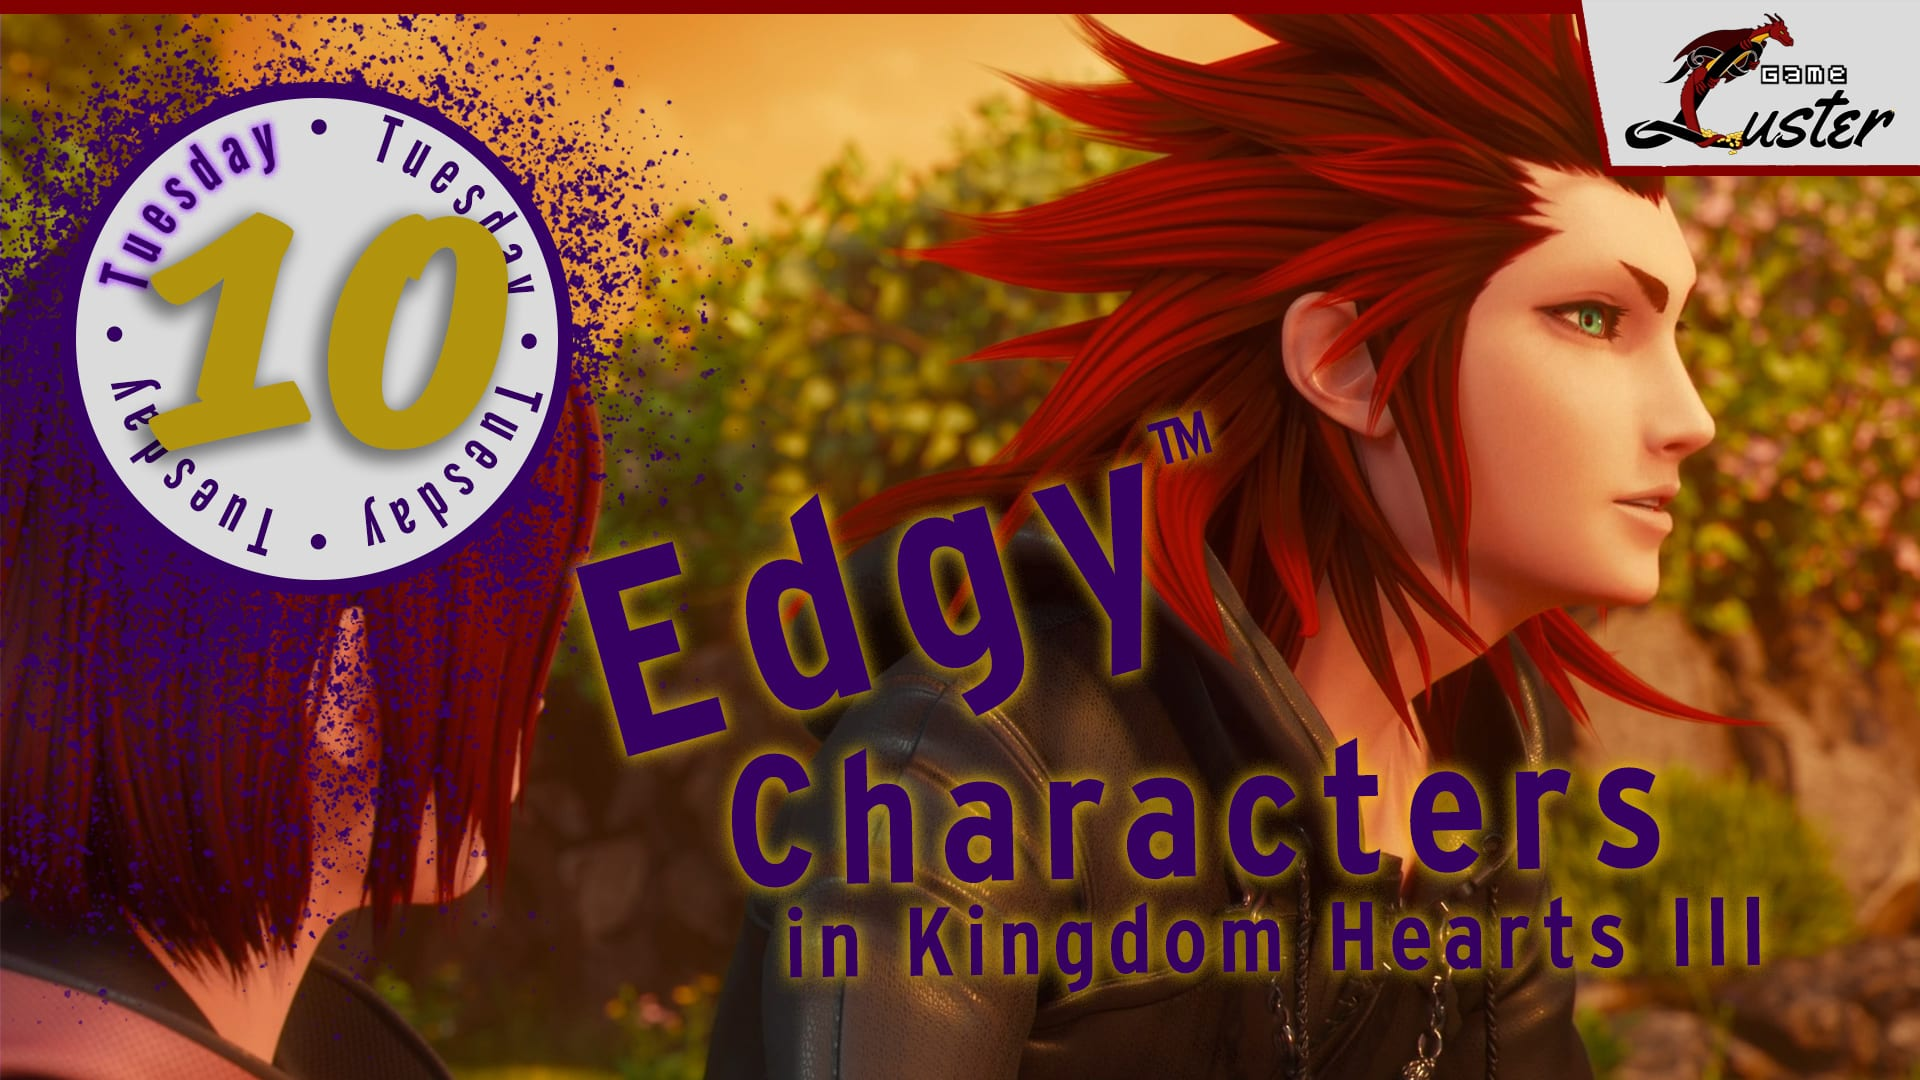 Tuesday 10 Edgy Kingdom Hearts